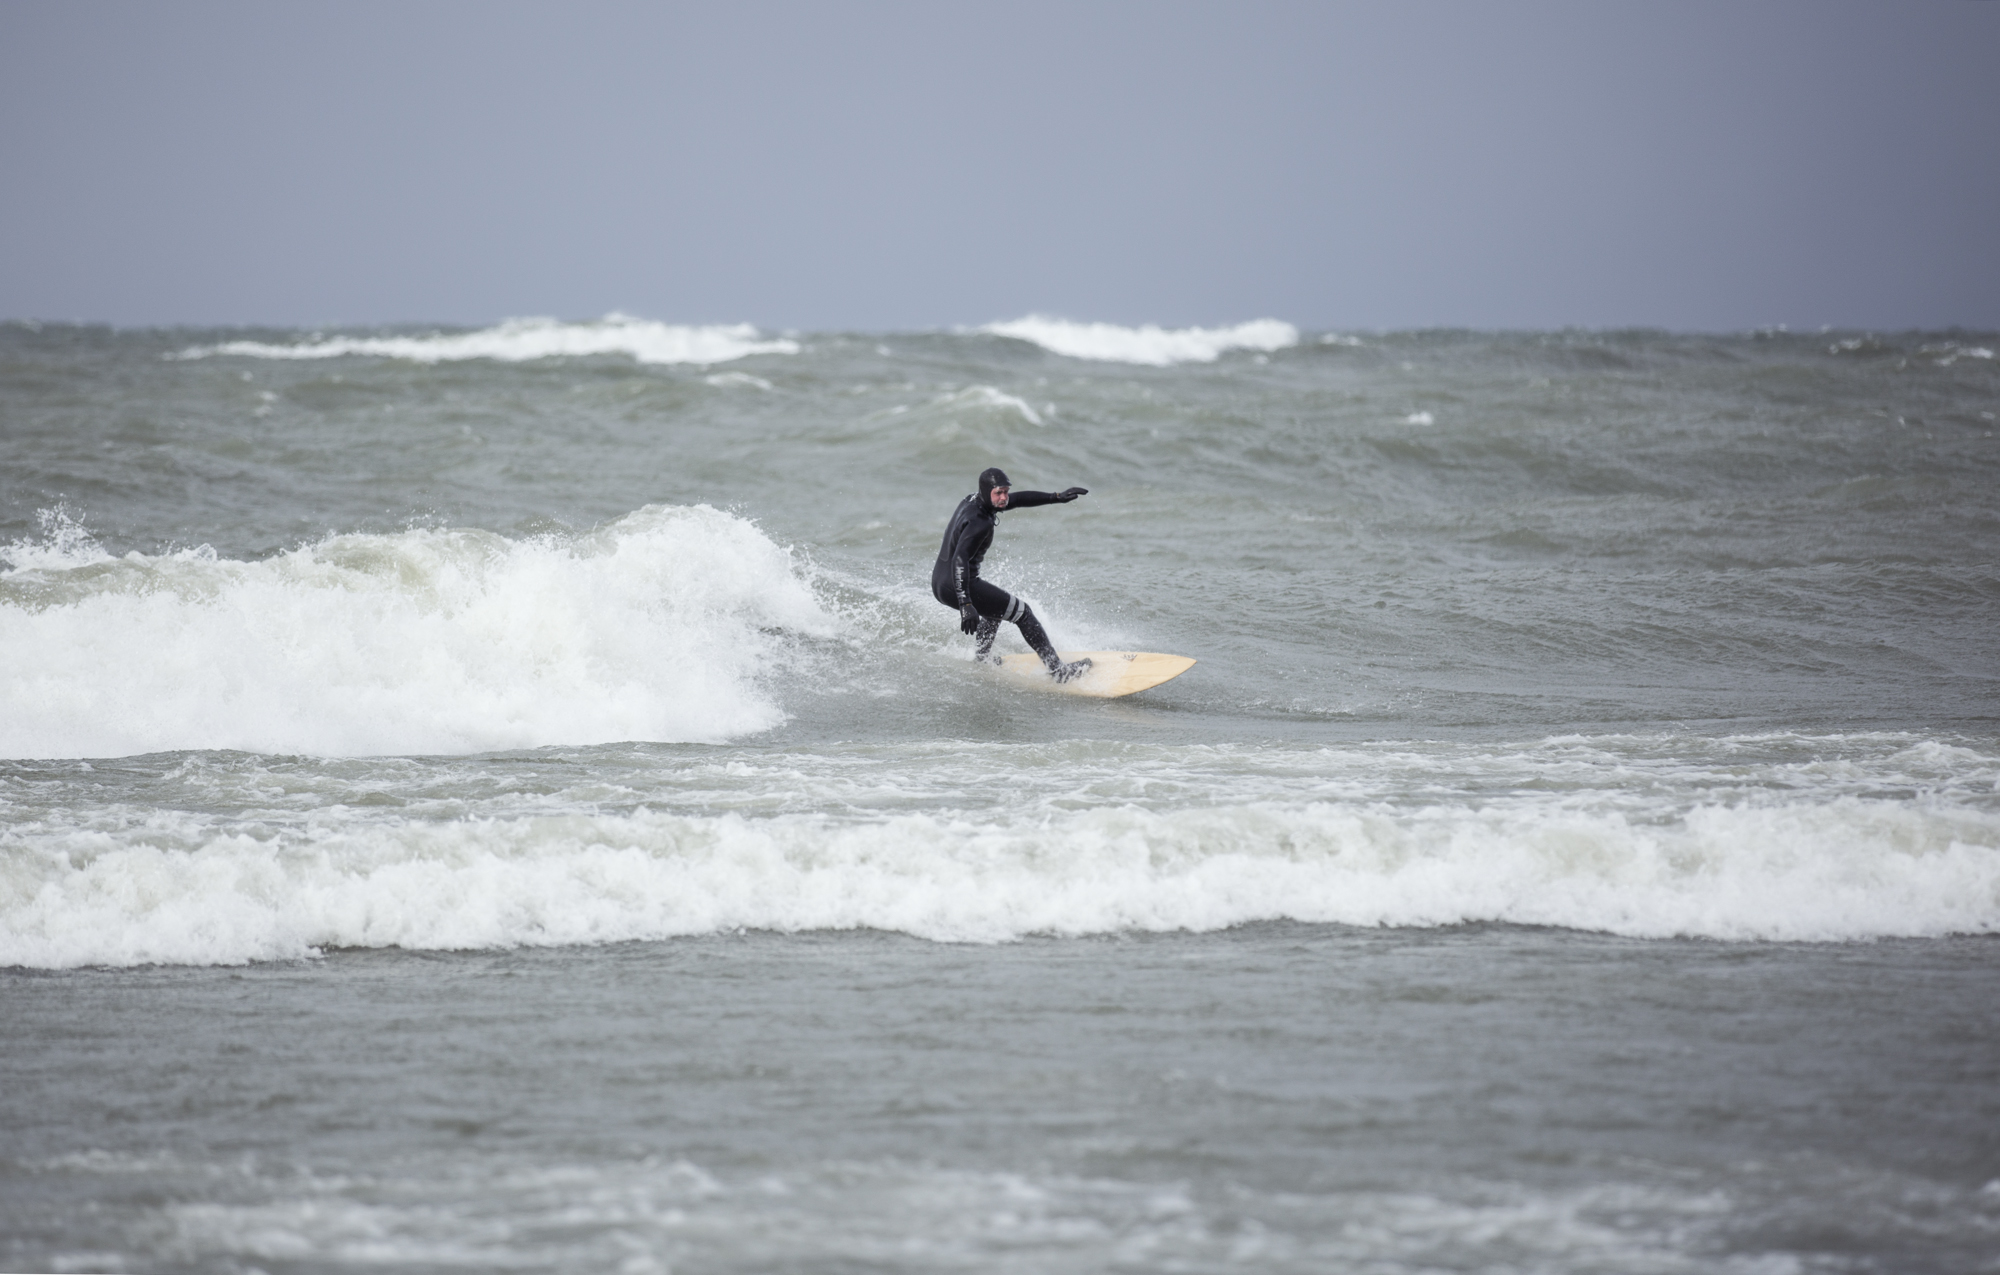 Surfing_the_Great_Lakes_Ontario_Alexandra_Coté_Durrer1.jpg